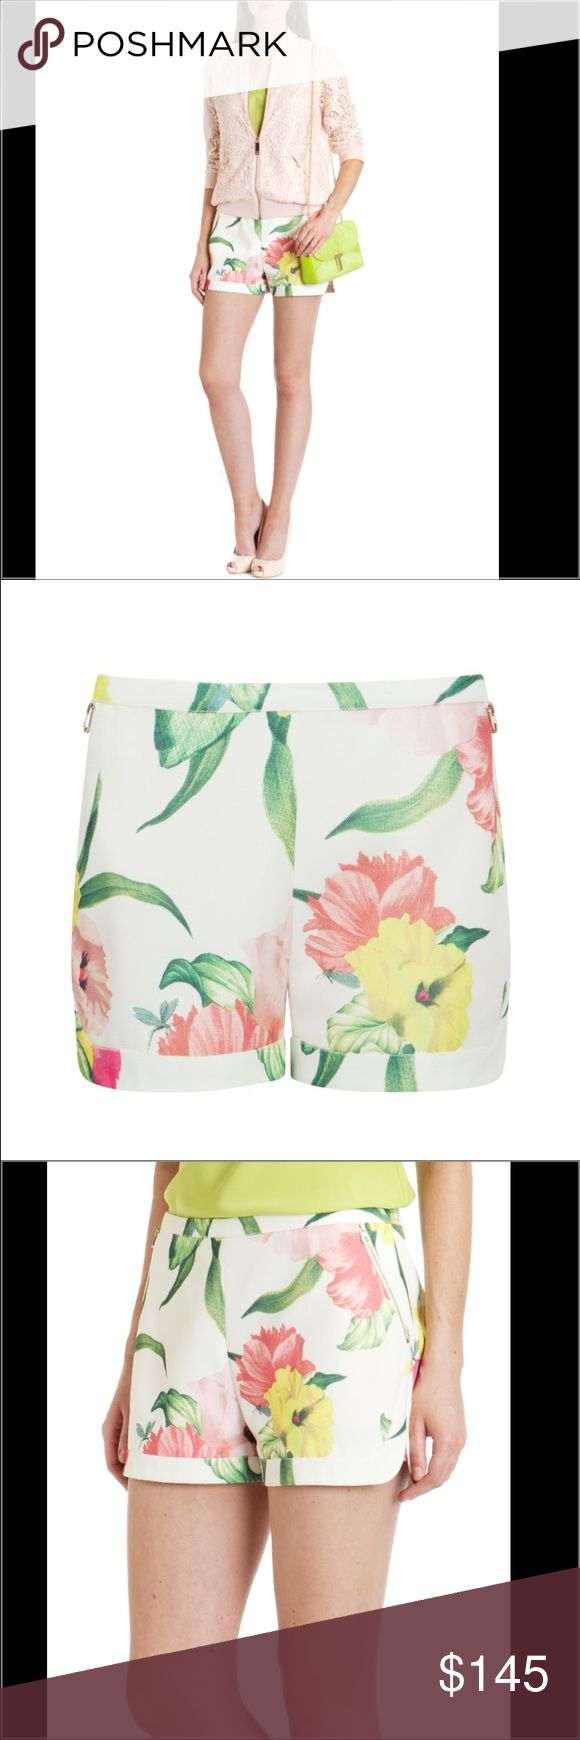 Ted Baker Floral Shorts Ted Baker Floral Shorts.  New with tags.  Perfect shorts for Spring and Summer.  Lined inside.  Side pockets with metallic zip fastening in the back. Ted Baker London Shorts